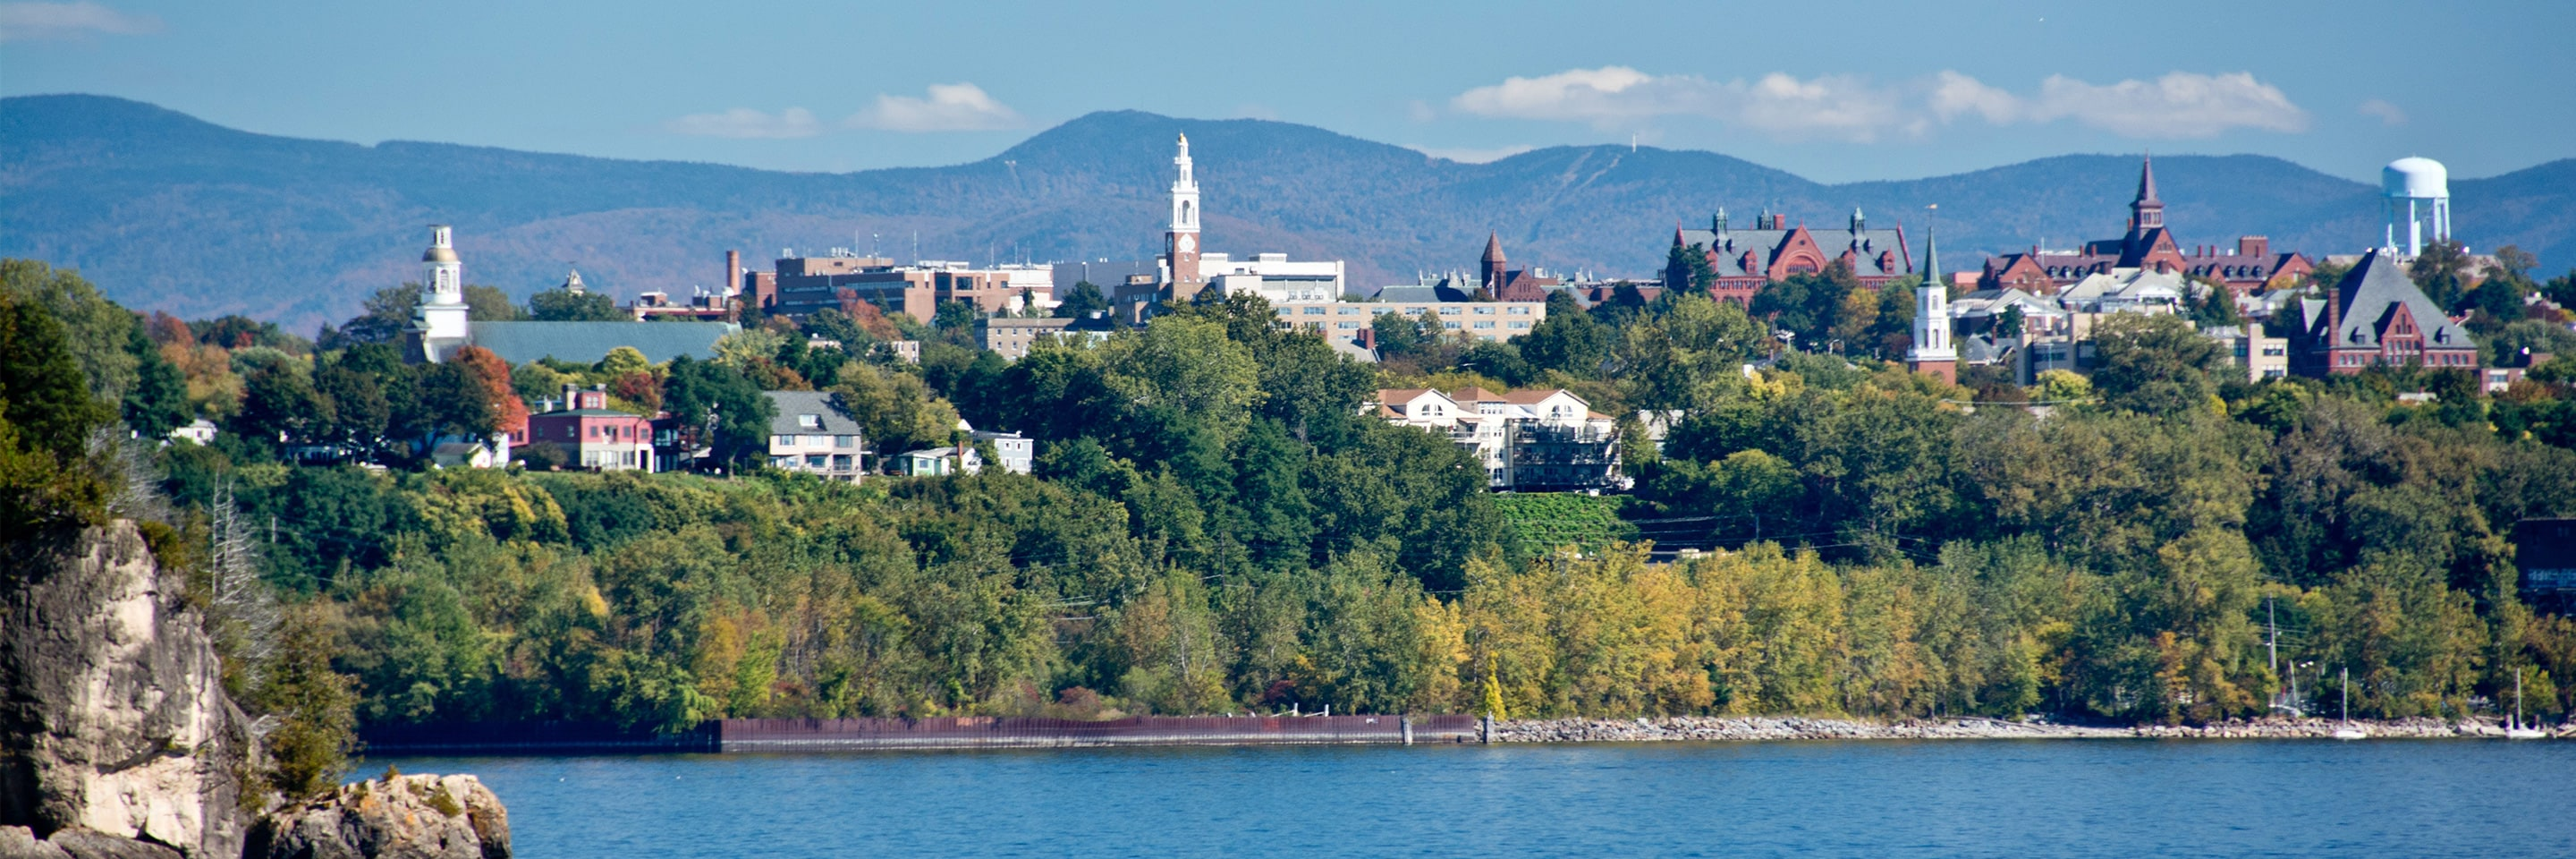 Hotels in Burlington, Vermont